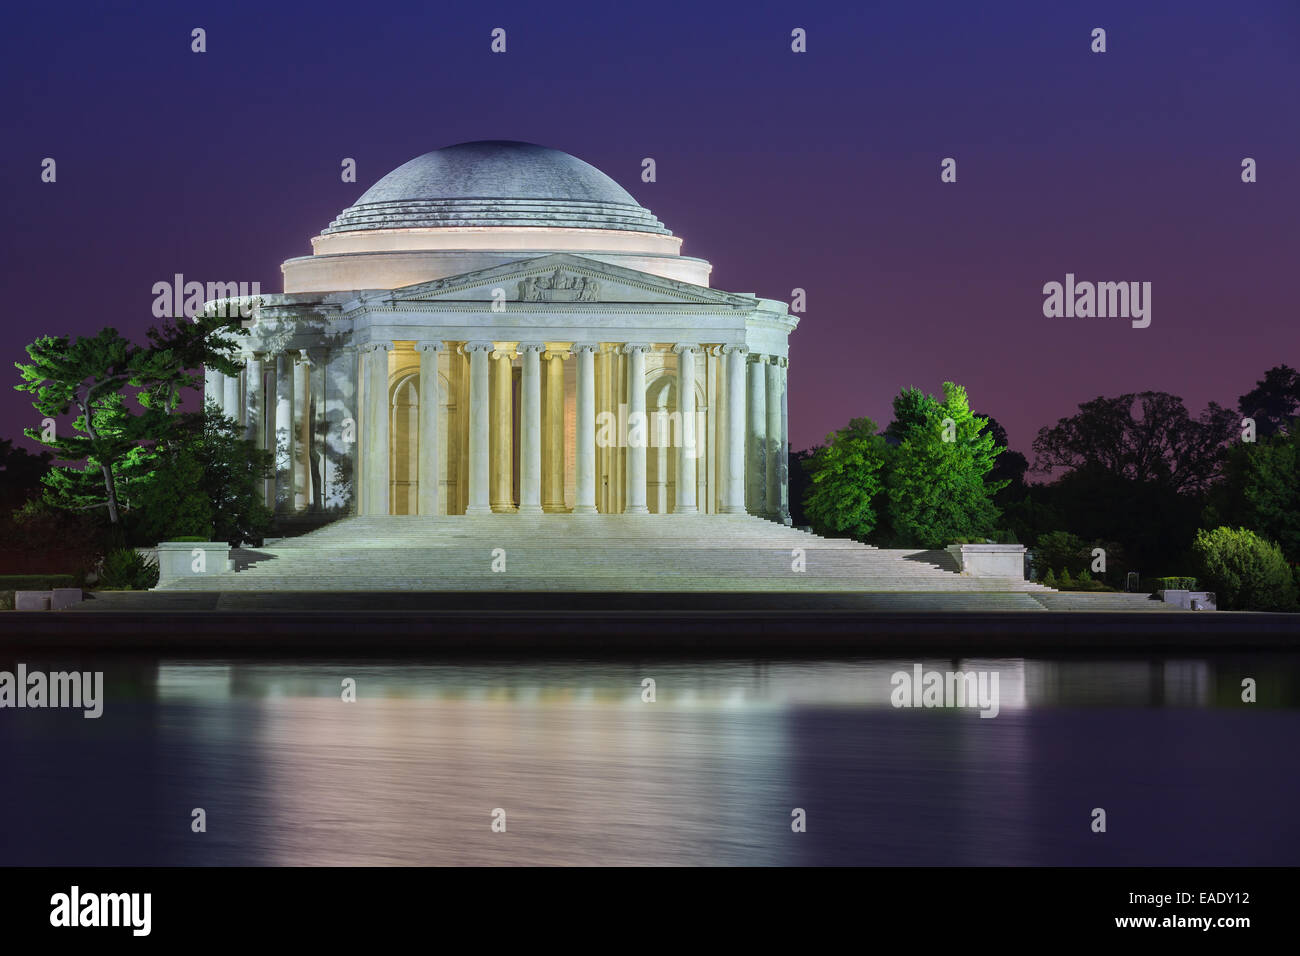 The Thomas Jefferson Memorial is a presidential memorial in Washington, D.C., dedicated to Thomas Jefferson, an - Stock Image